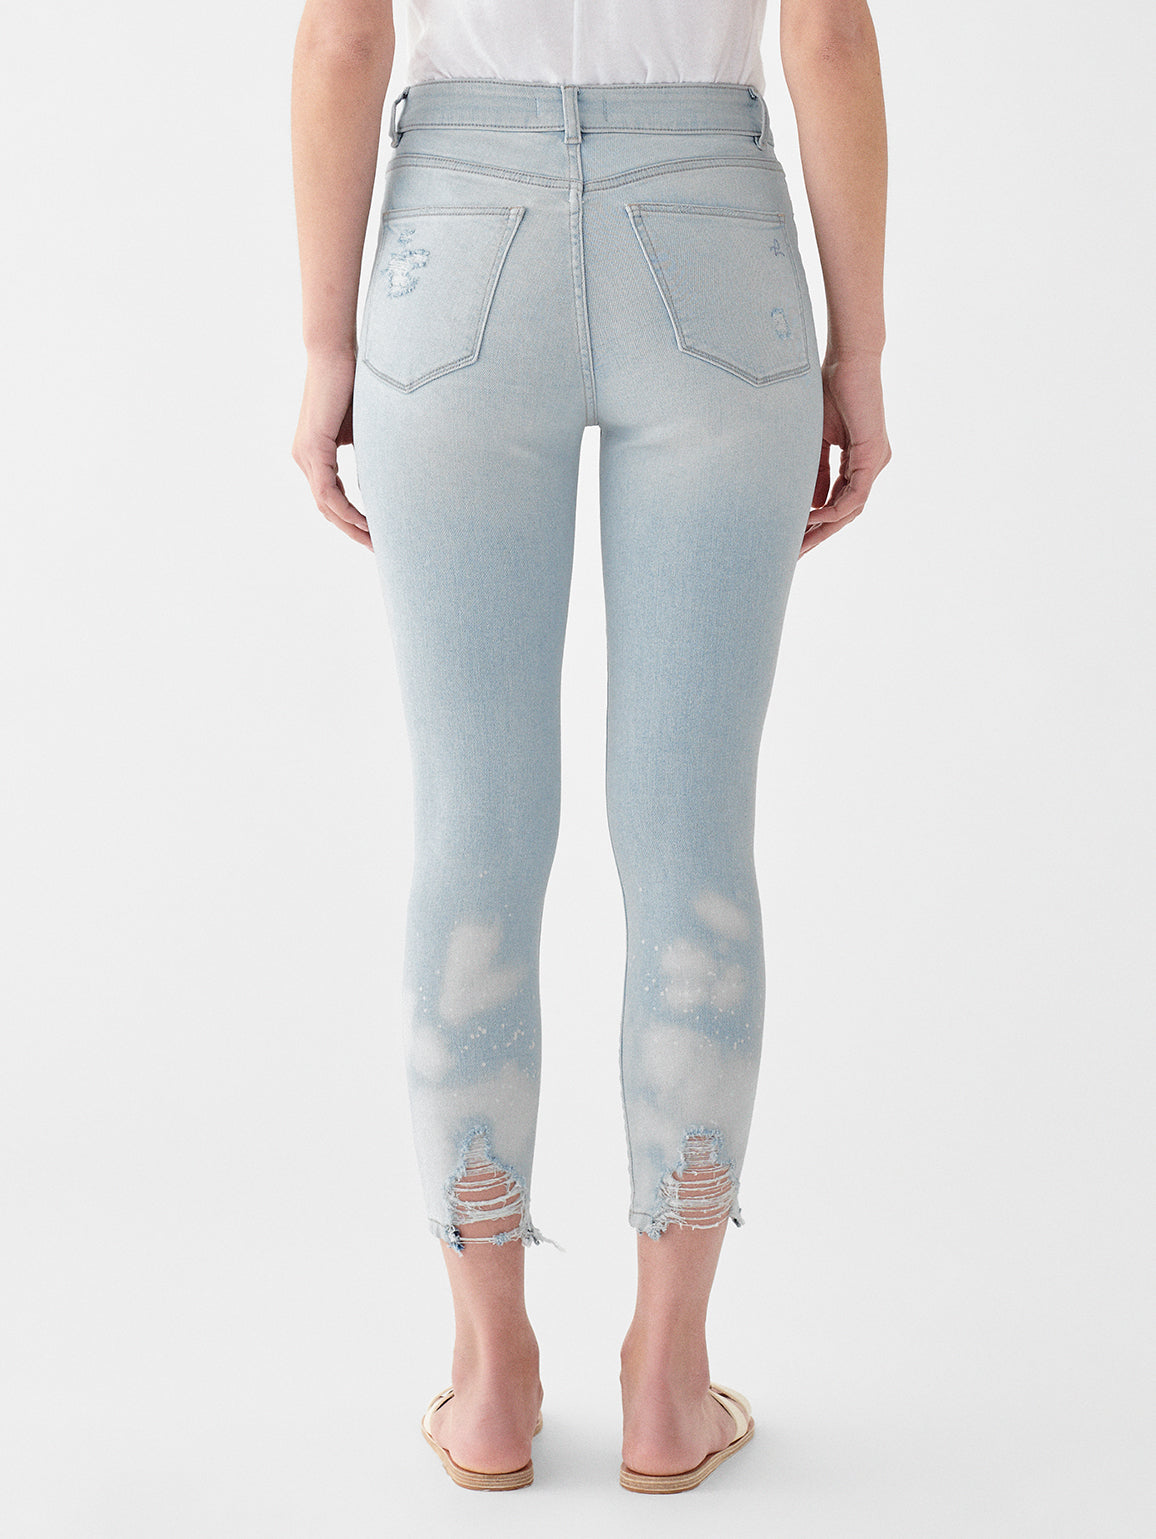 Farrow Crop High Rise Skinny | Goodwin